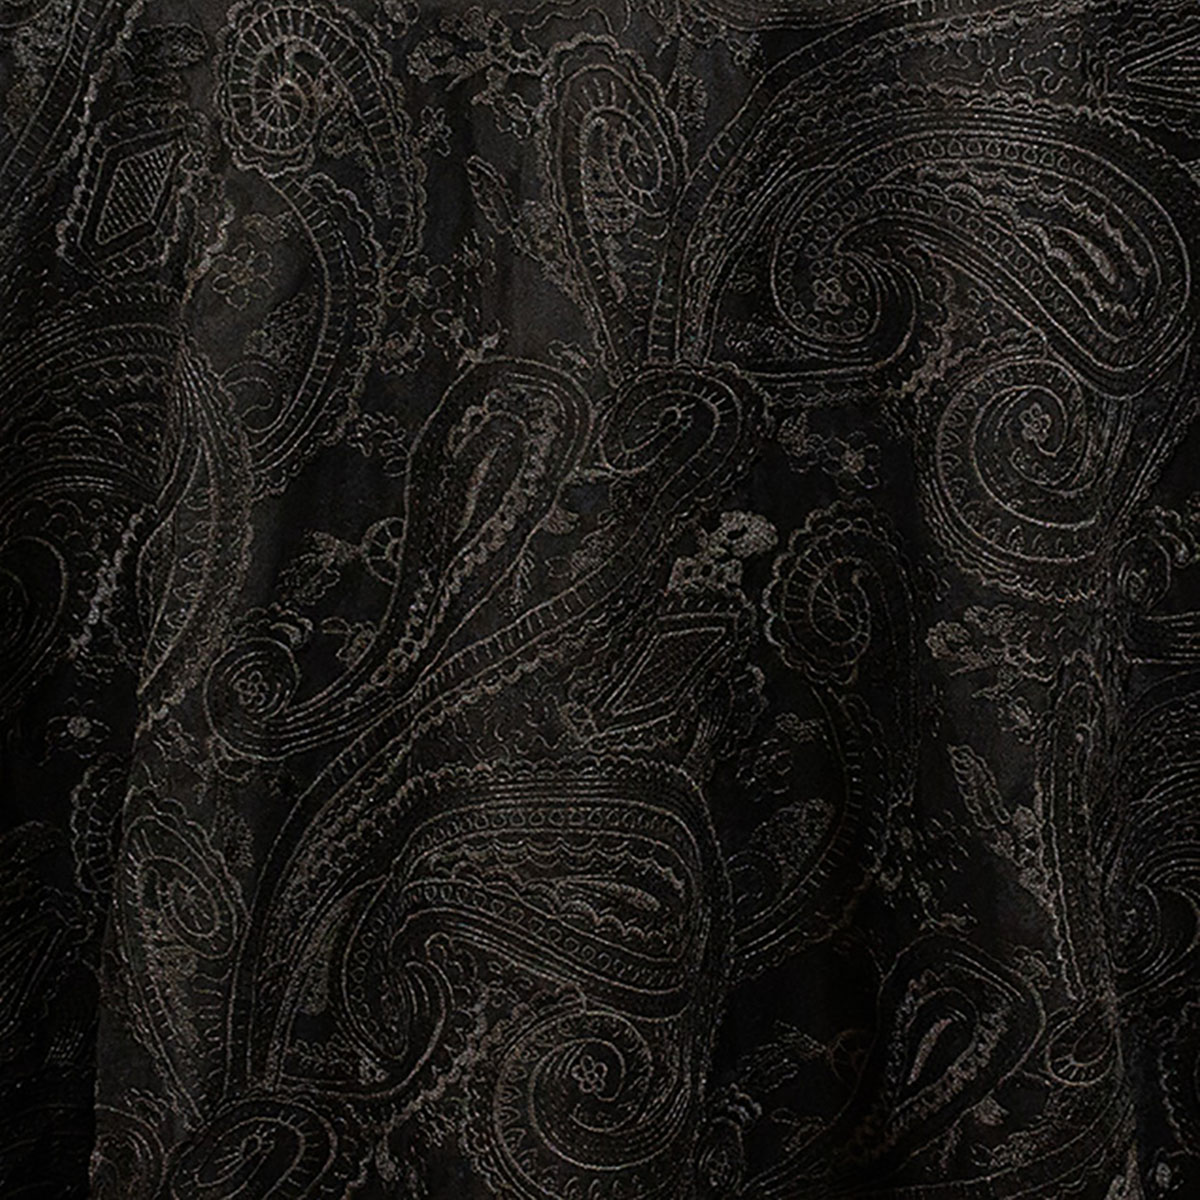 Black Paisley Lace